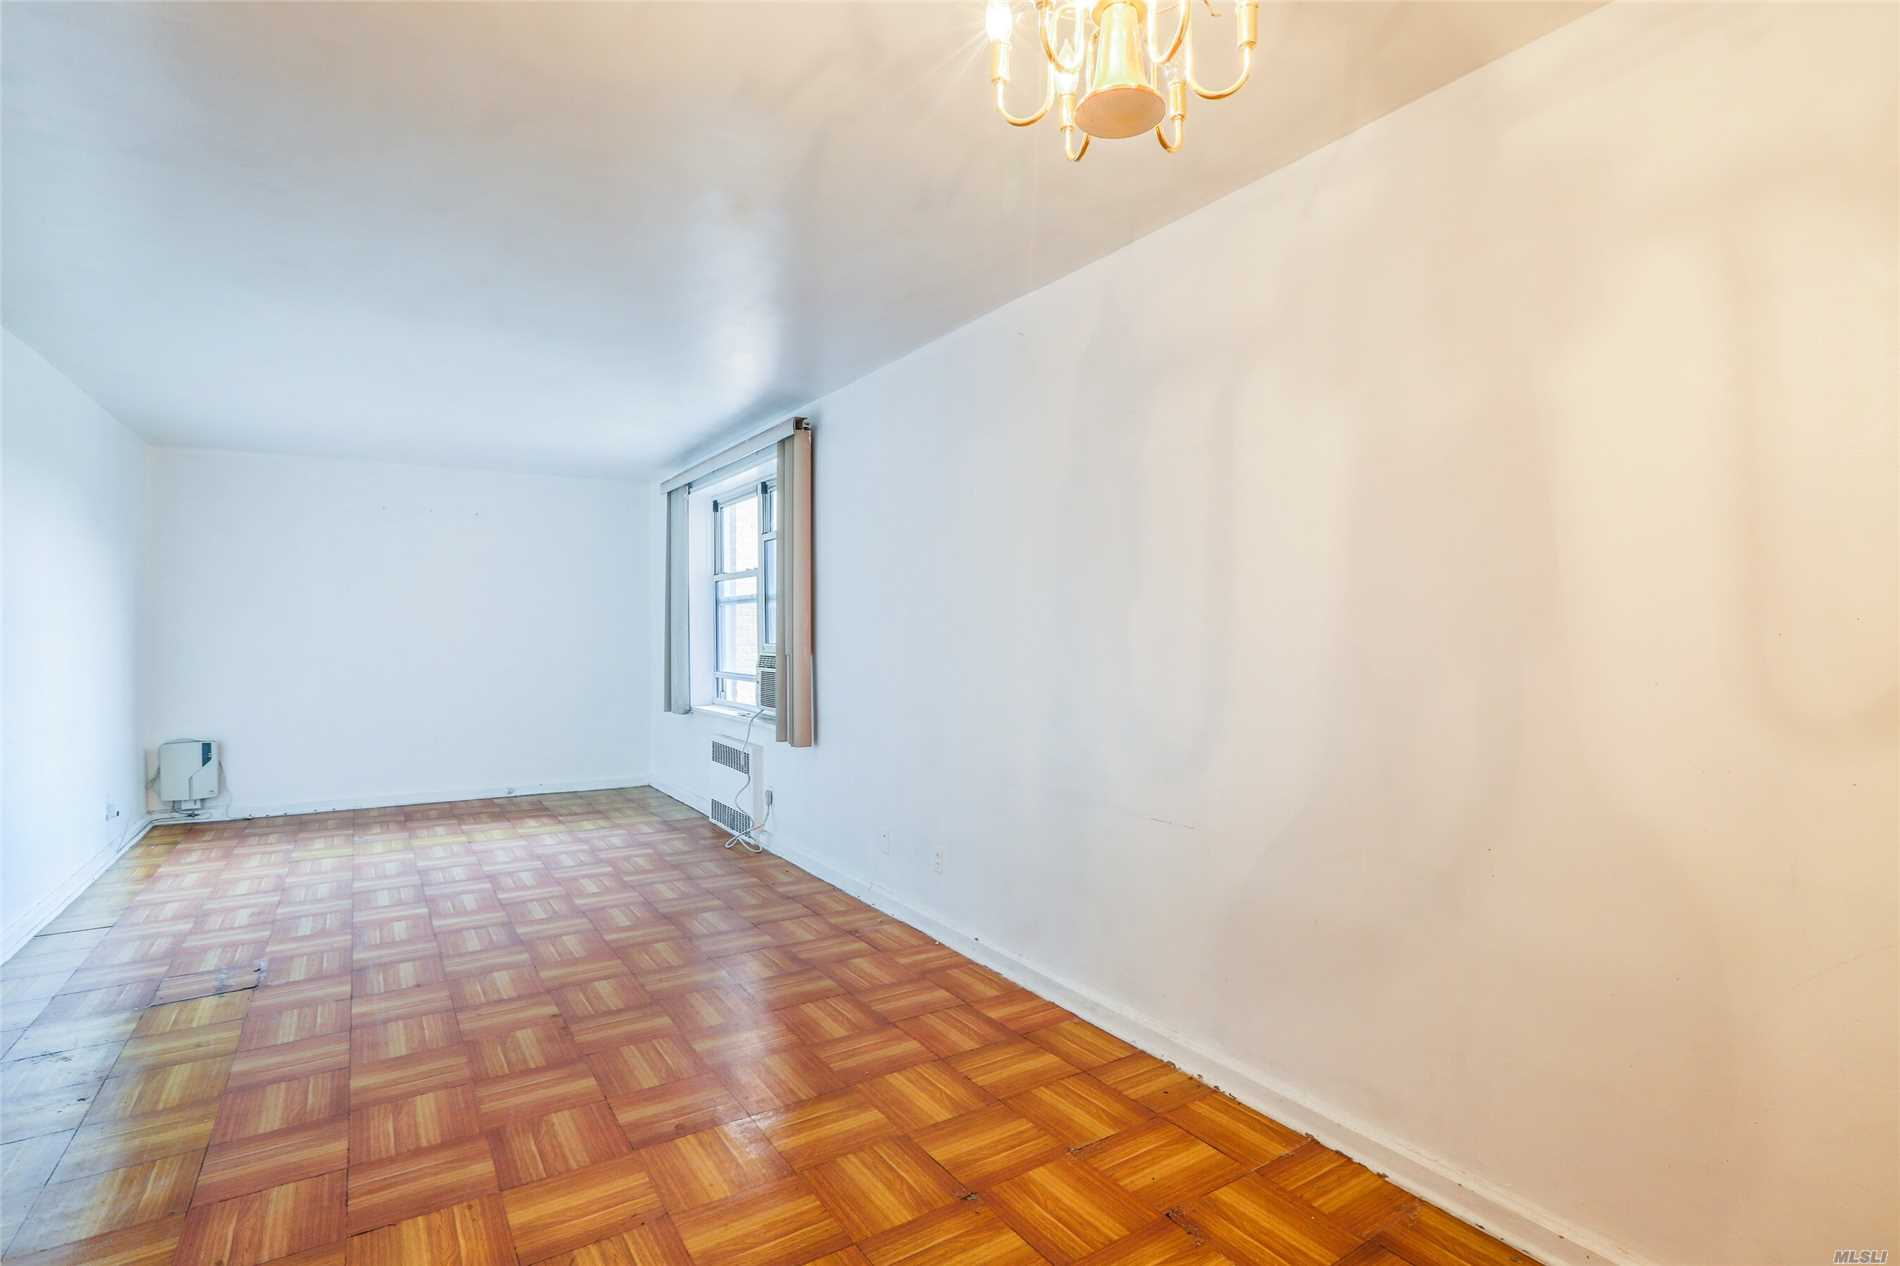 Apartment On 2nd Floor. Sunny One Bedroom Apartment. Large Living Room. Plenty Of Windows. Located On Union Street. Maintenance Fee Includes Electricity/ Heat/ Hot Water. Nearby Supermarket, Post Office, Express Bus To Manhattan.